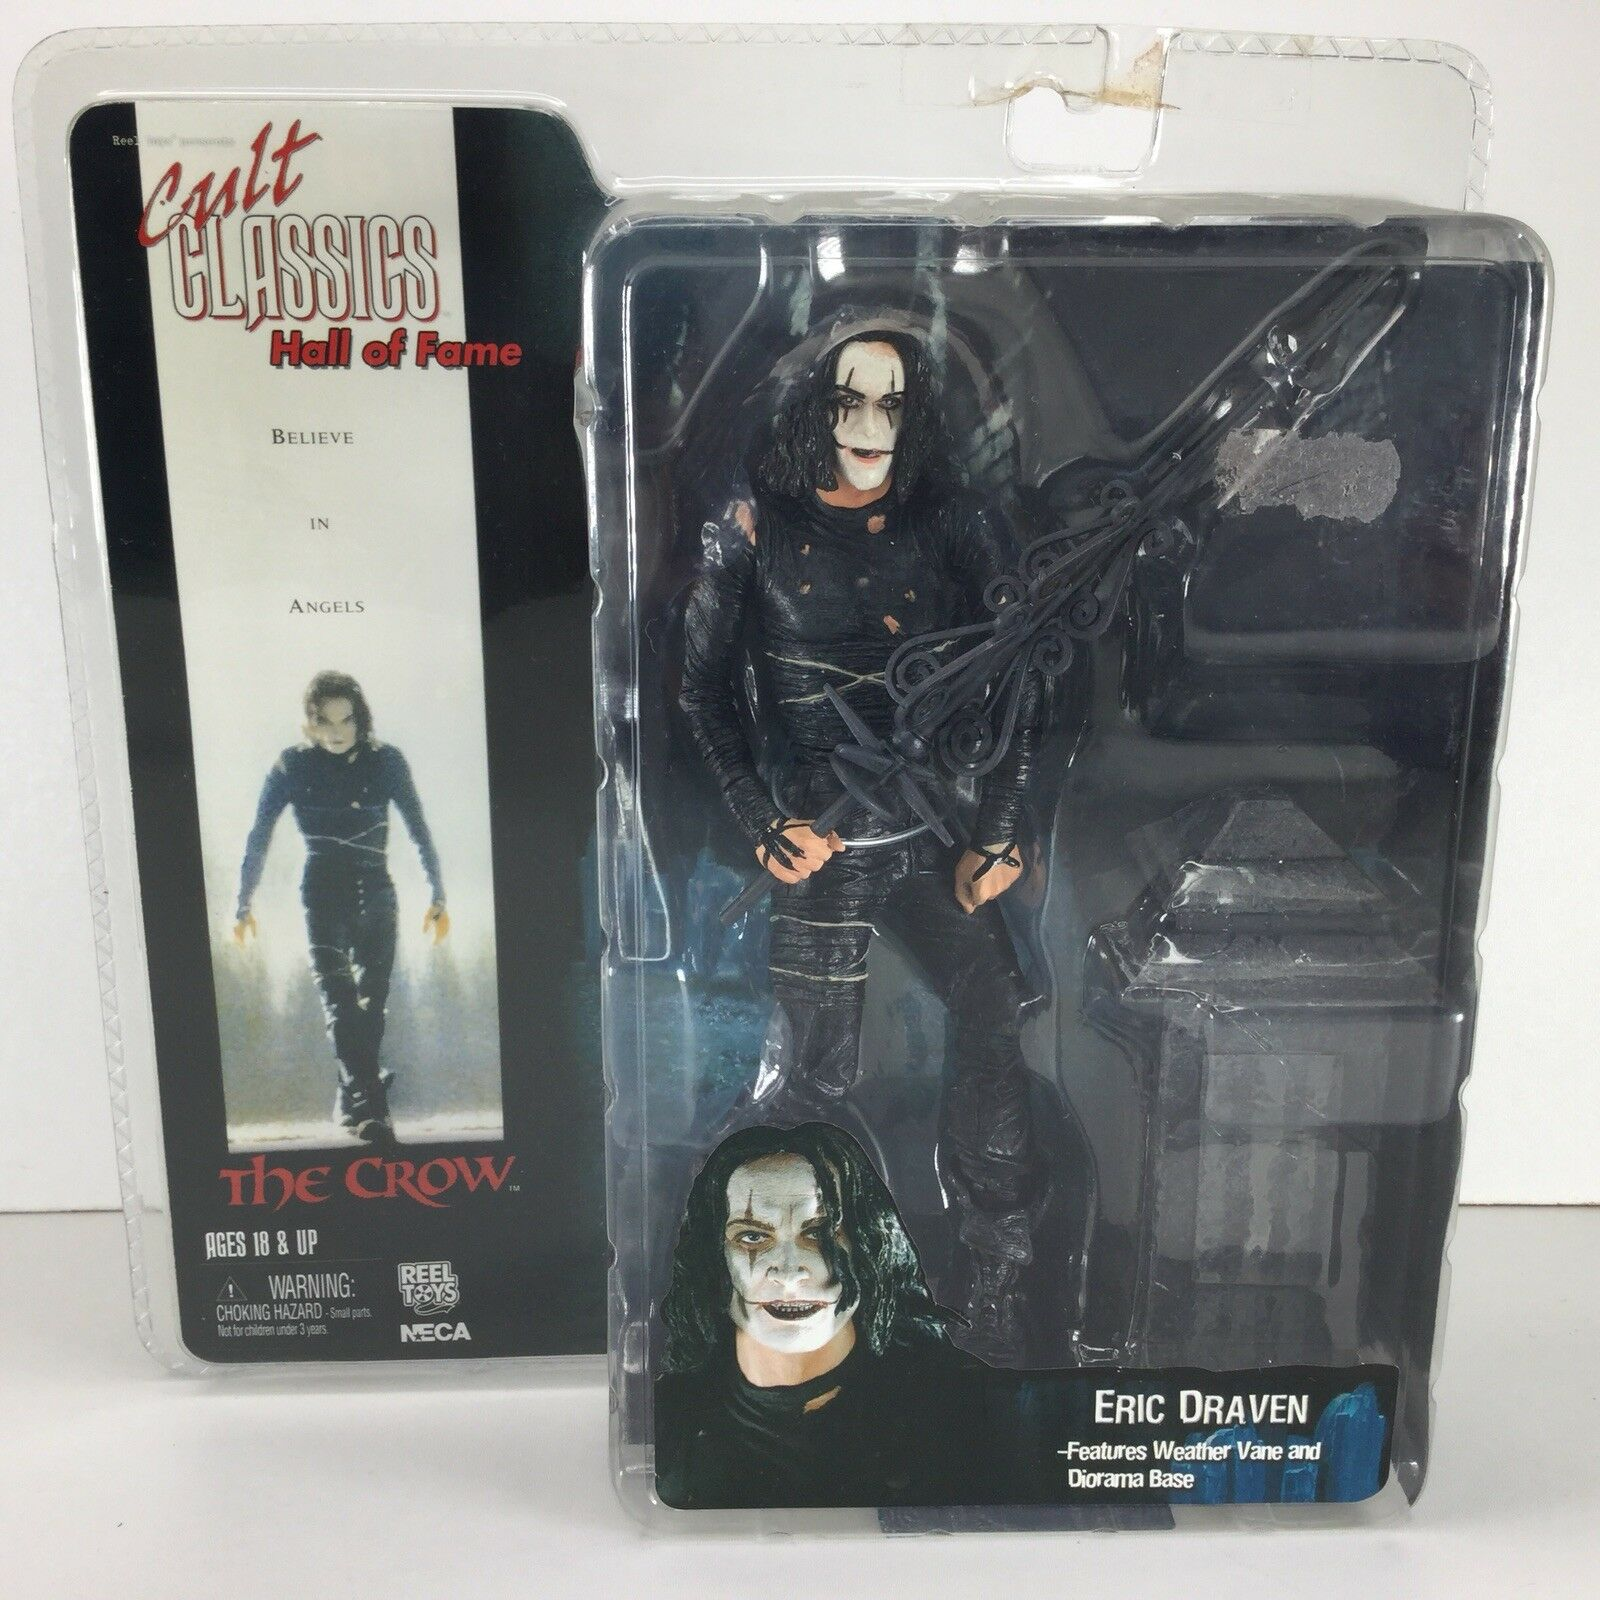 NECA Cult Classics Hall Of Fame The Crow Eric Draven Action Figure MOC Horror